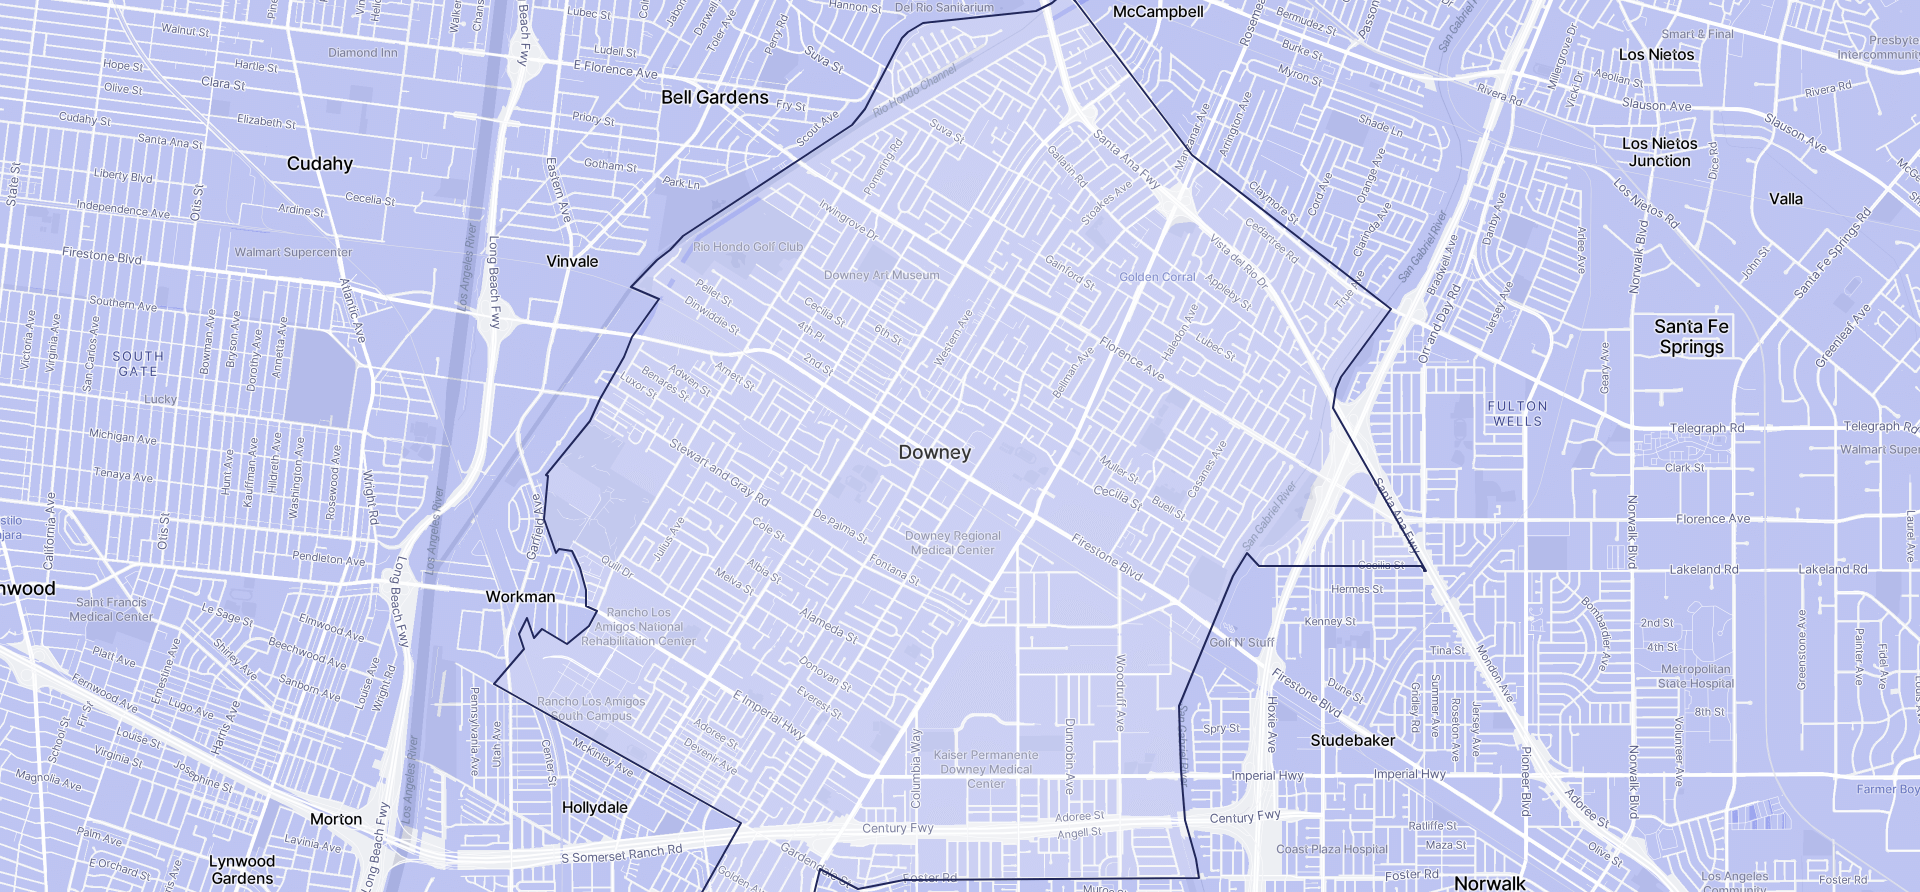 Image of Downey boundaries on a map.